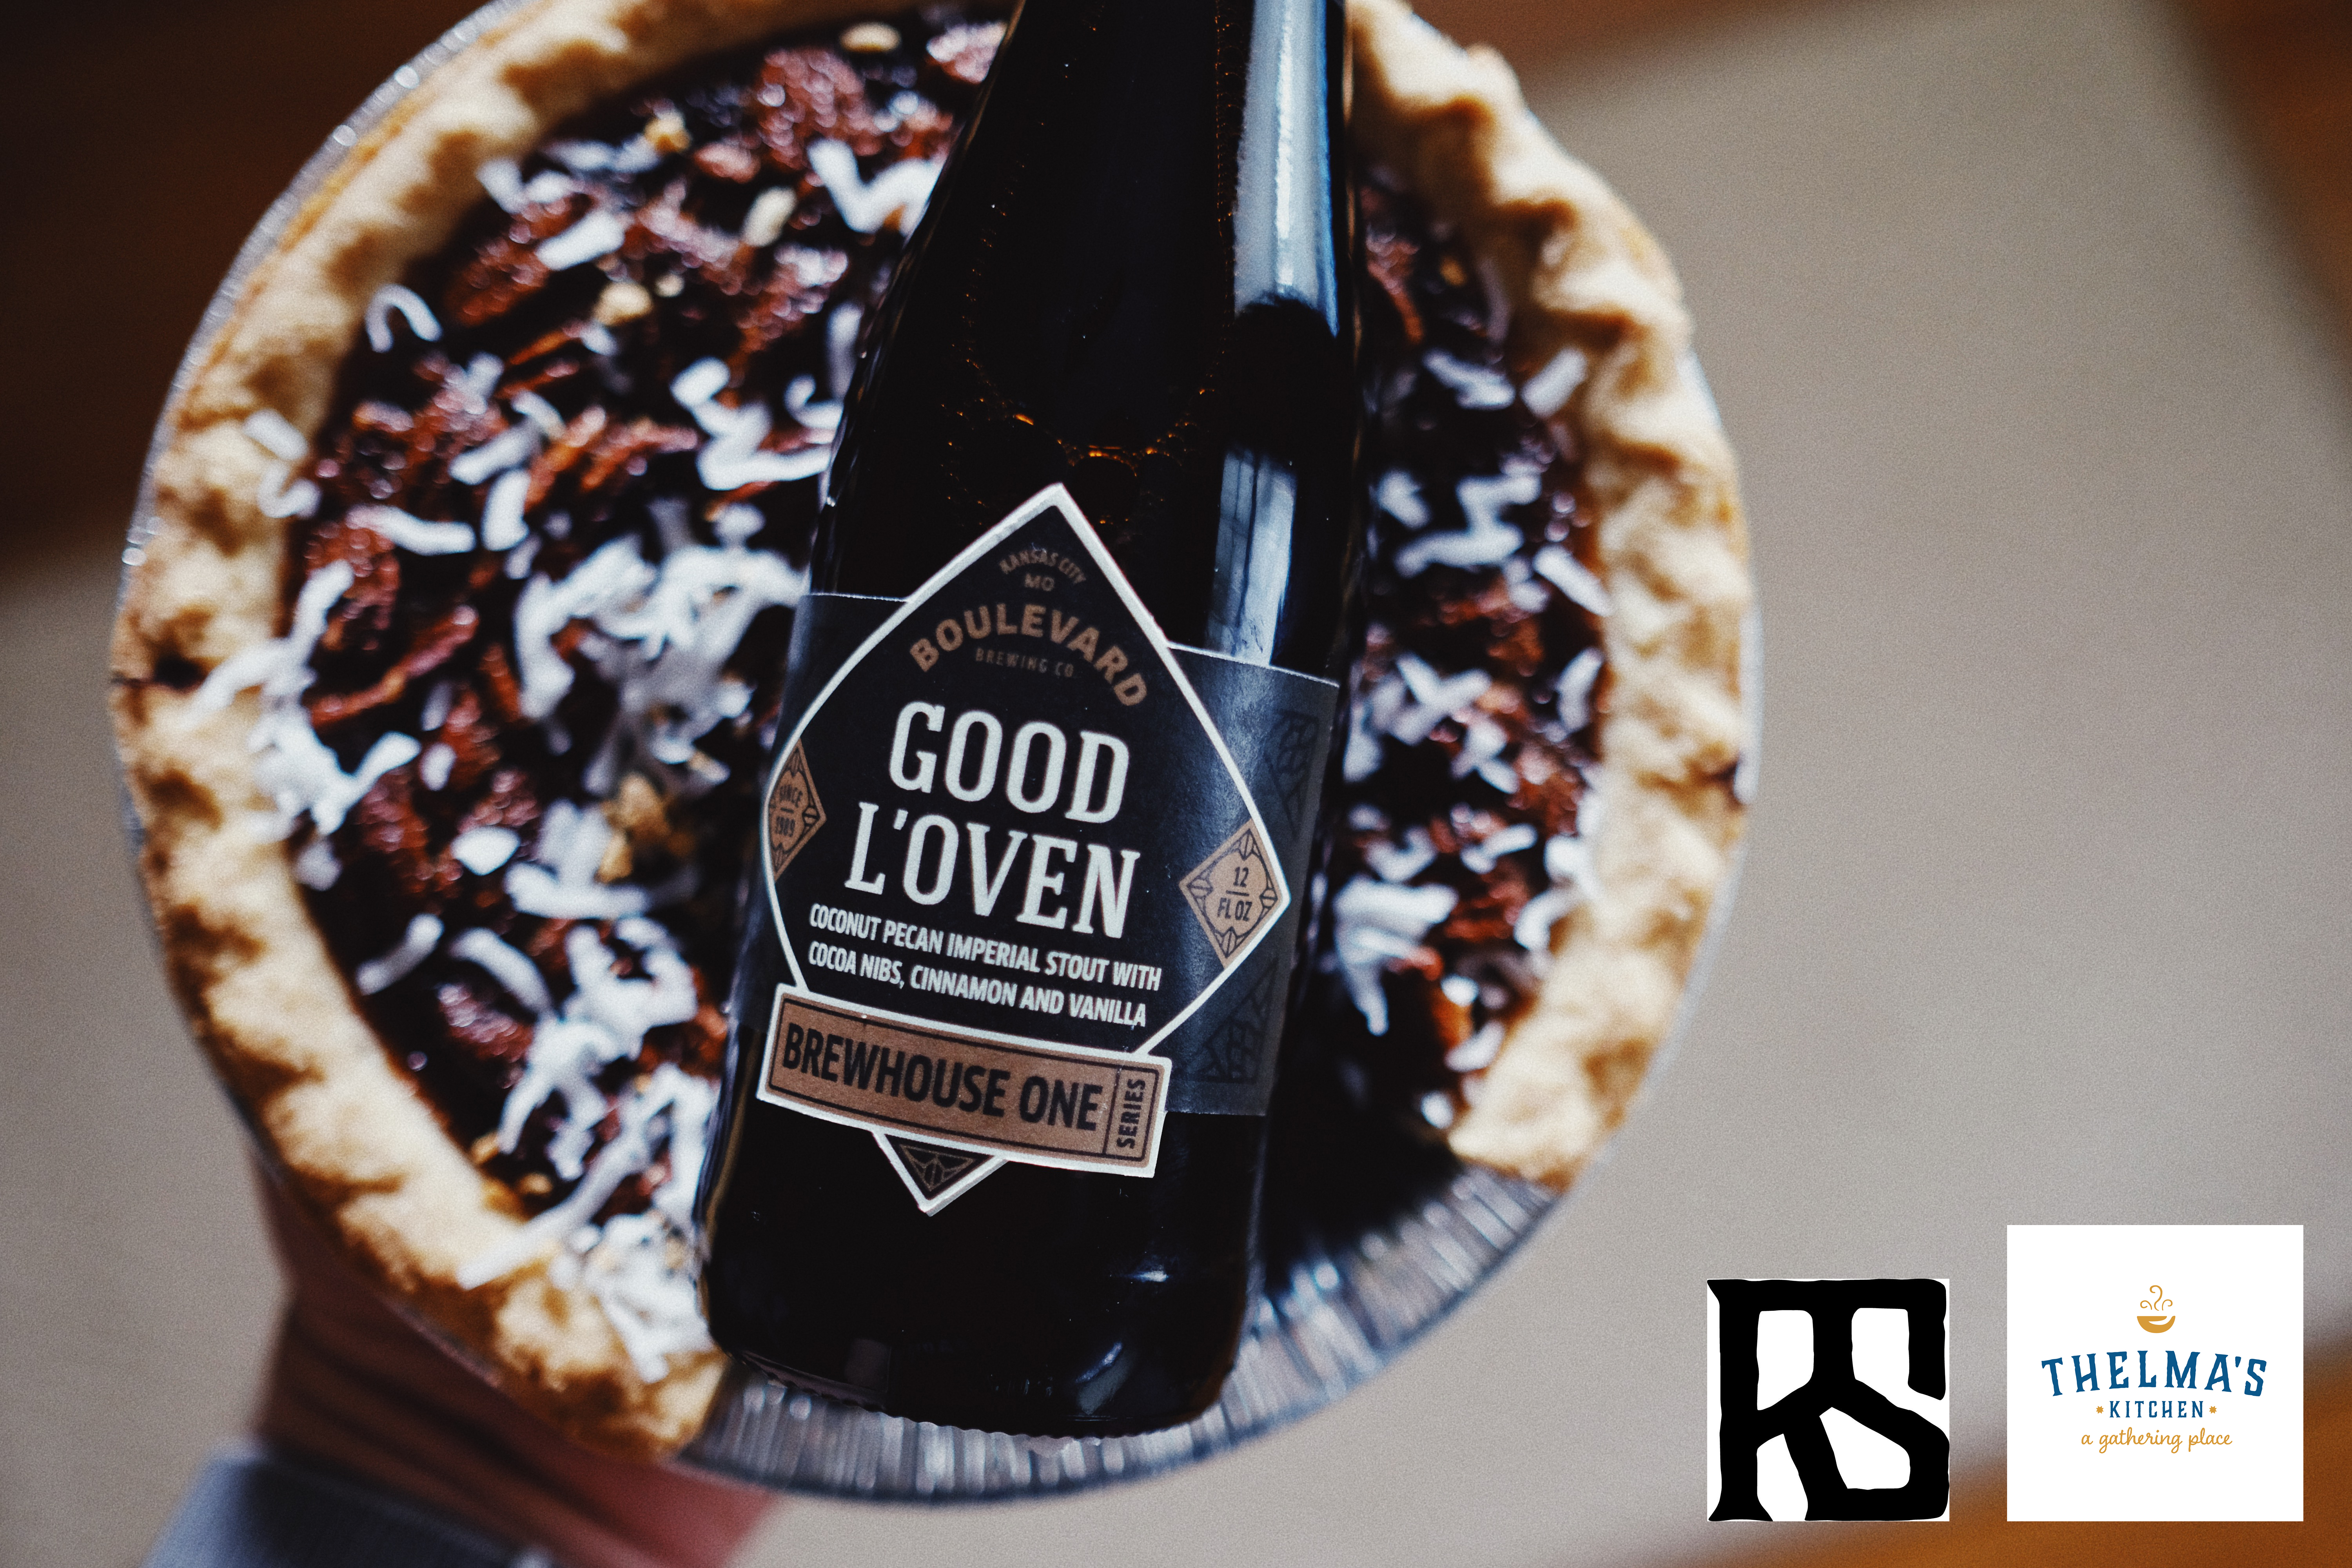 Good L'Oven Imperial Stout